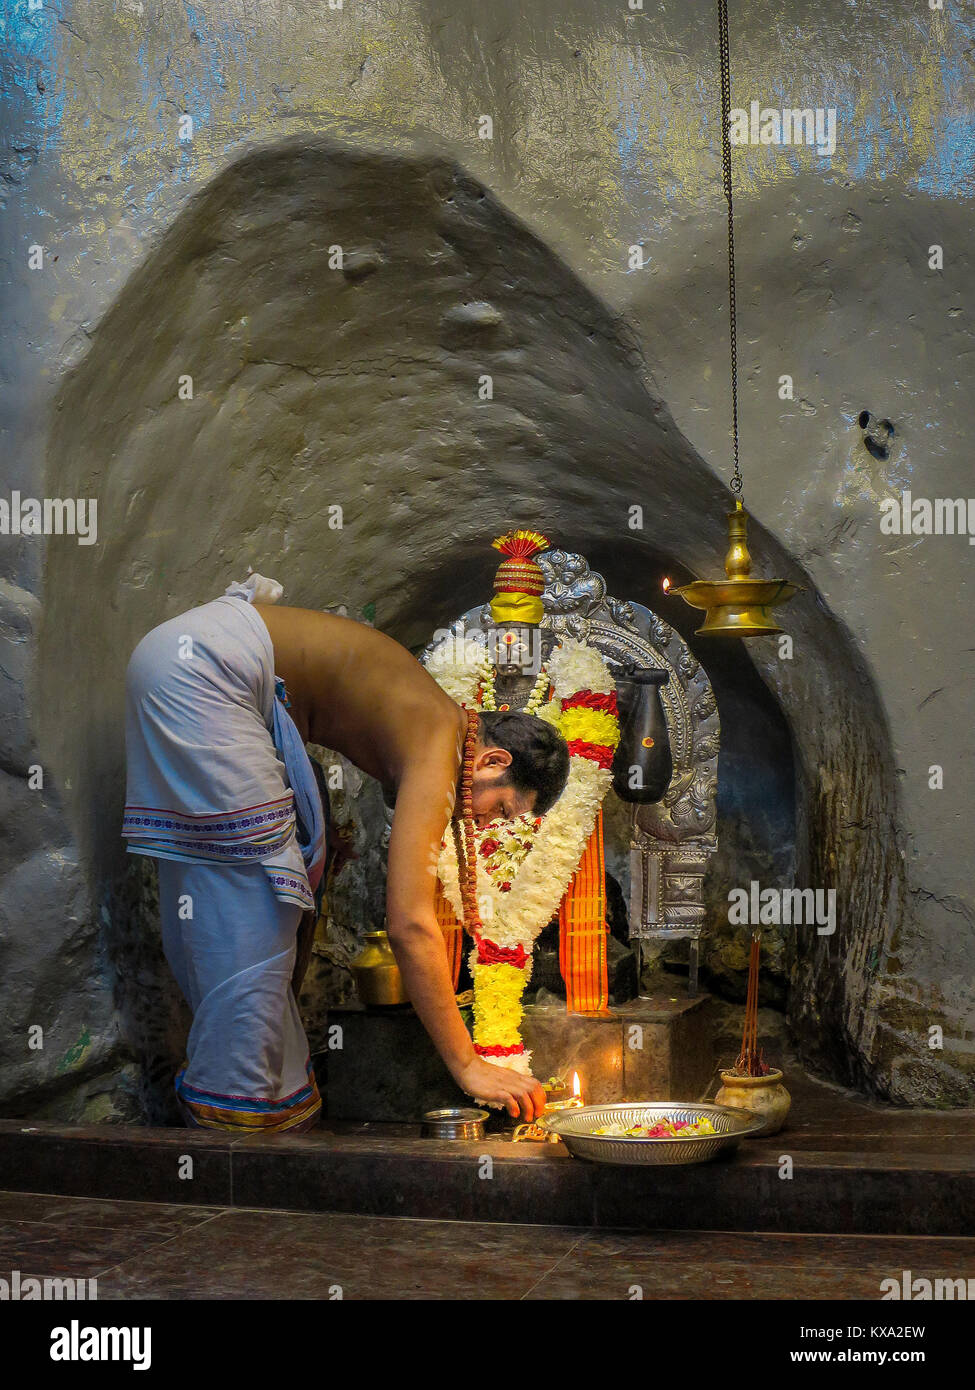 A Hindu devotee makes an offering to the Hanuman, a popular deity in Hinduism, at the Batu Caves in Gombak, Selangor, - Stock Image